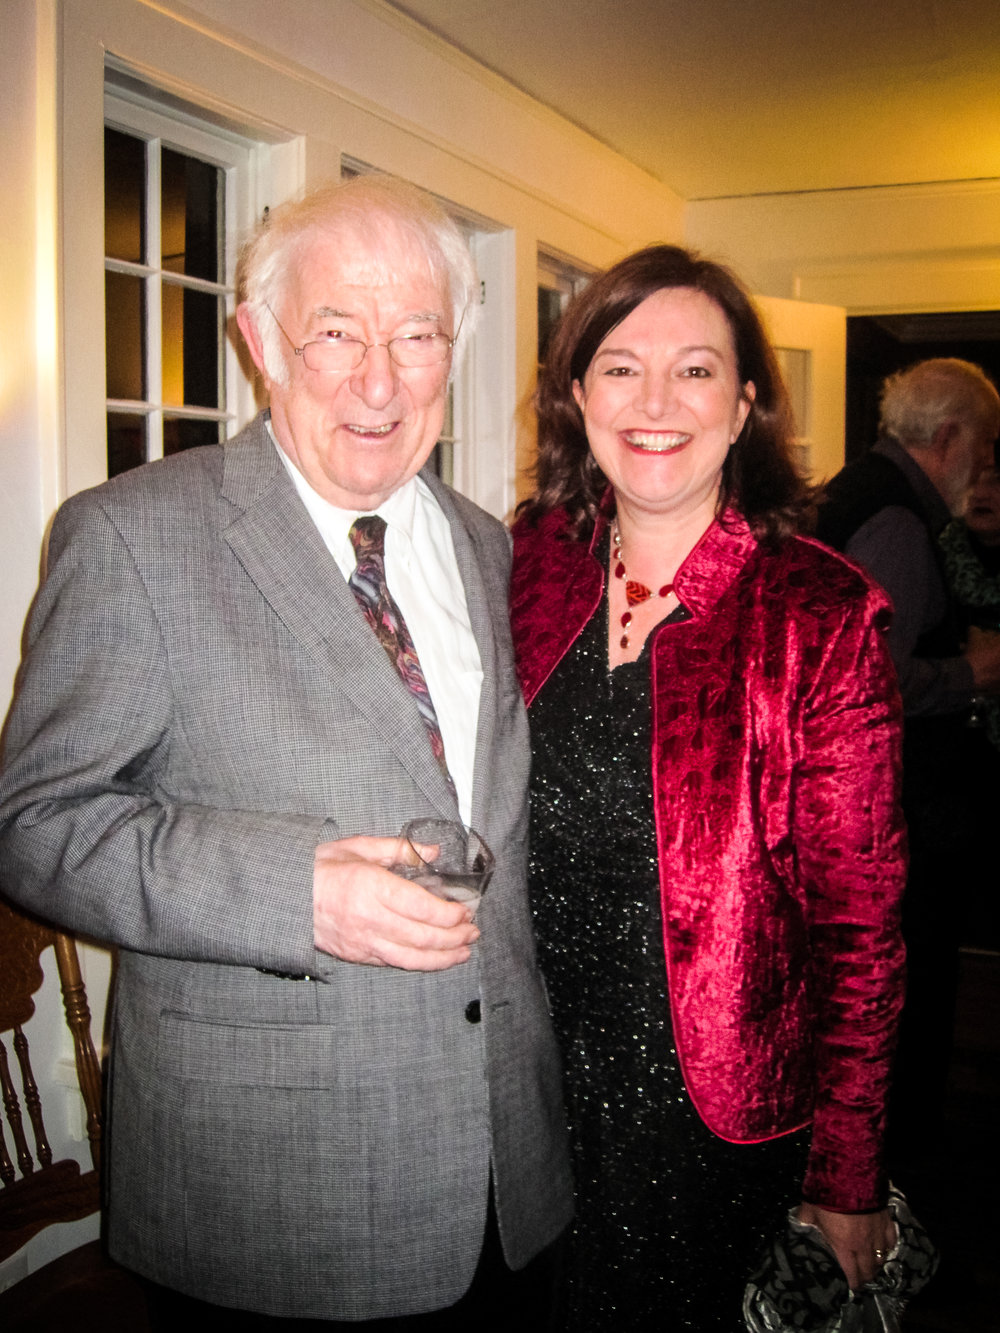 Seamus Heaney and Geraldine Higgins in Atlanta, 2013.